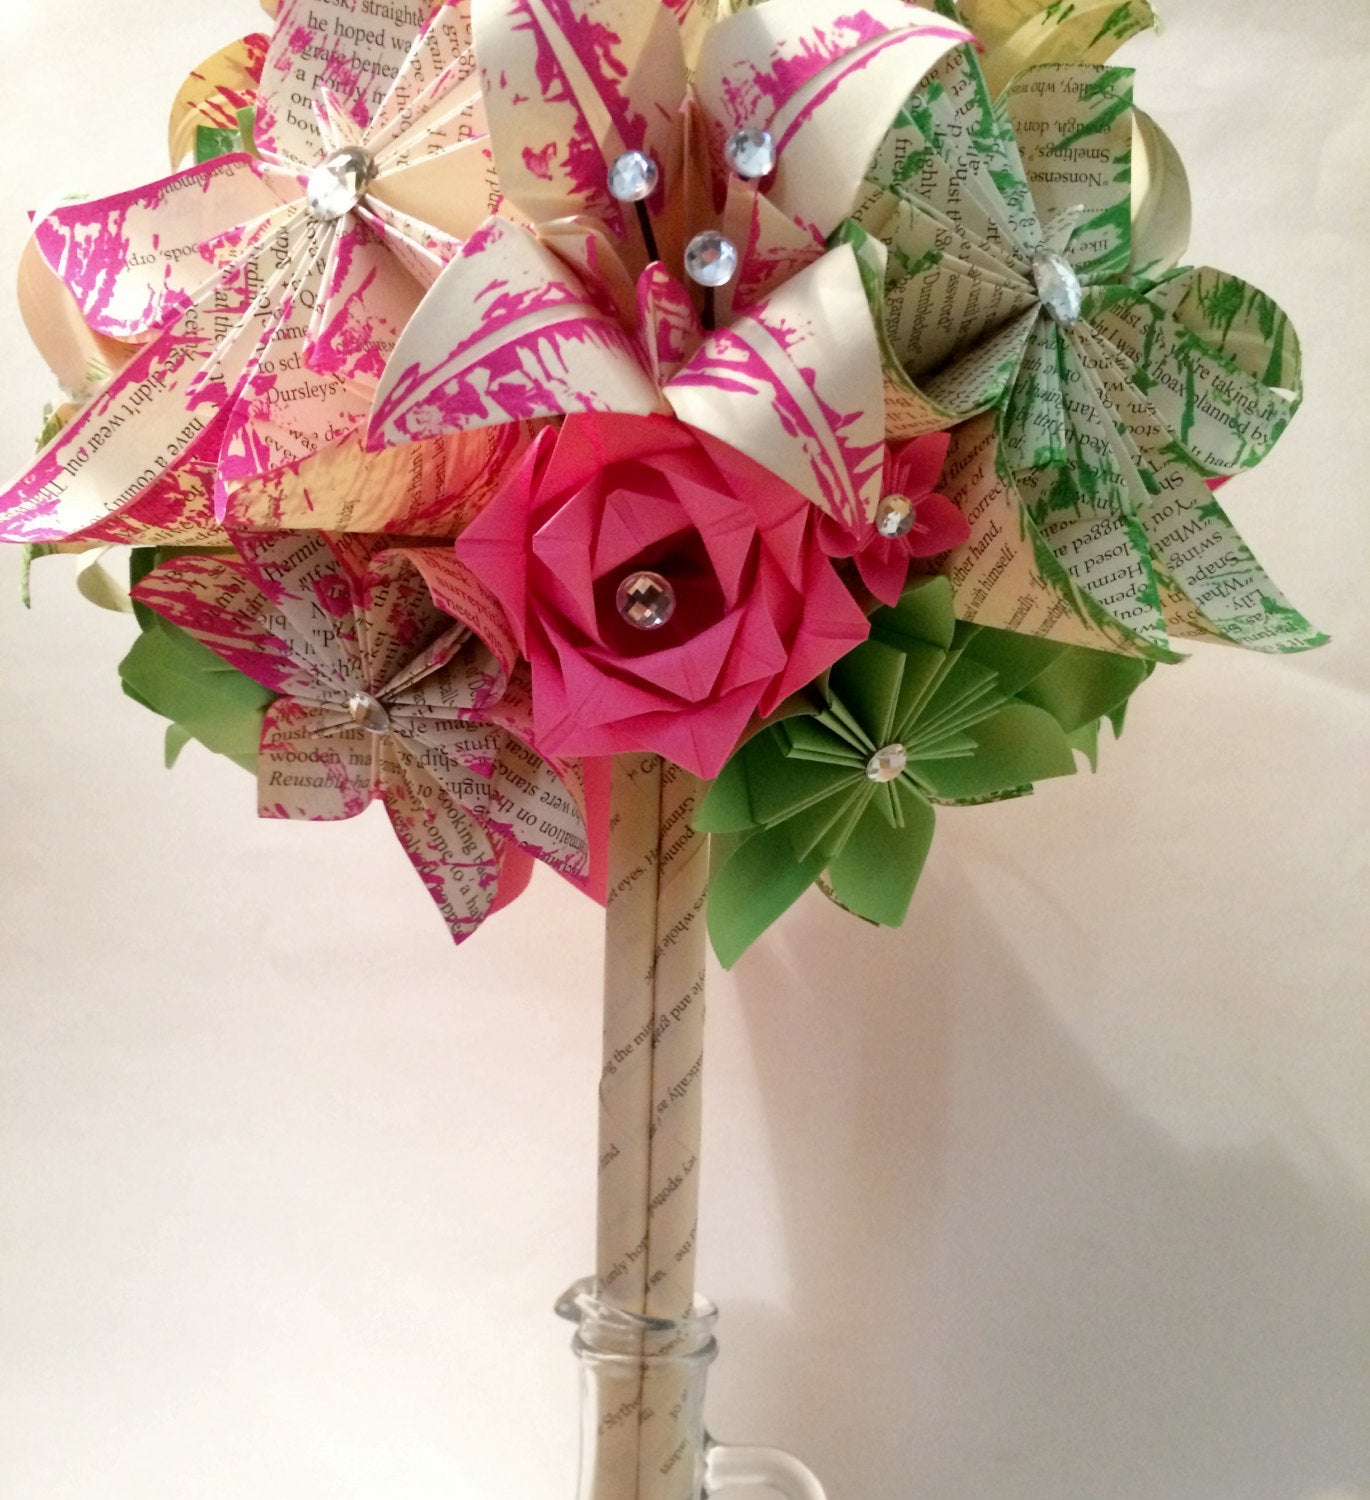 Roses & Lilies custom paper brides bouquet- made to order, one of a kind, origami, paper flowers, alternative bouquet, non traditional